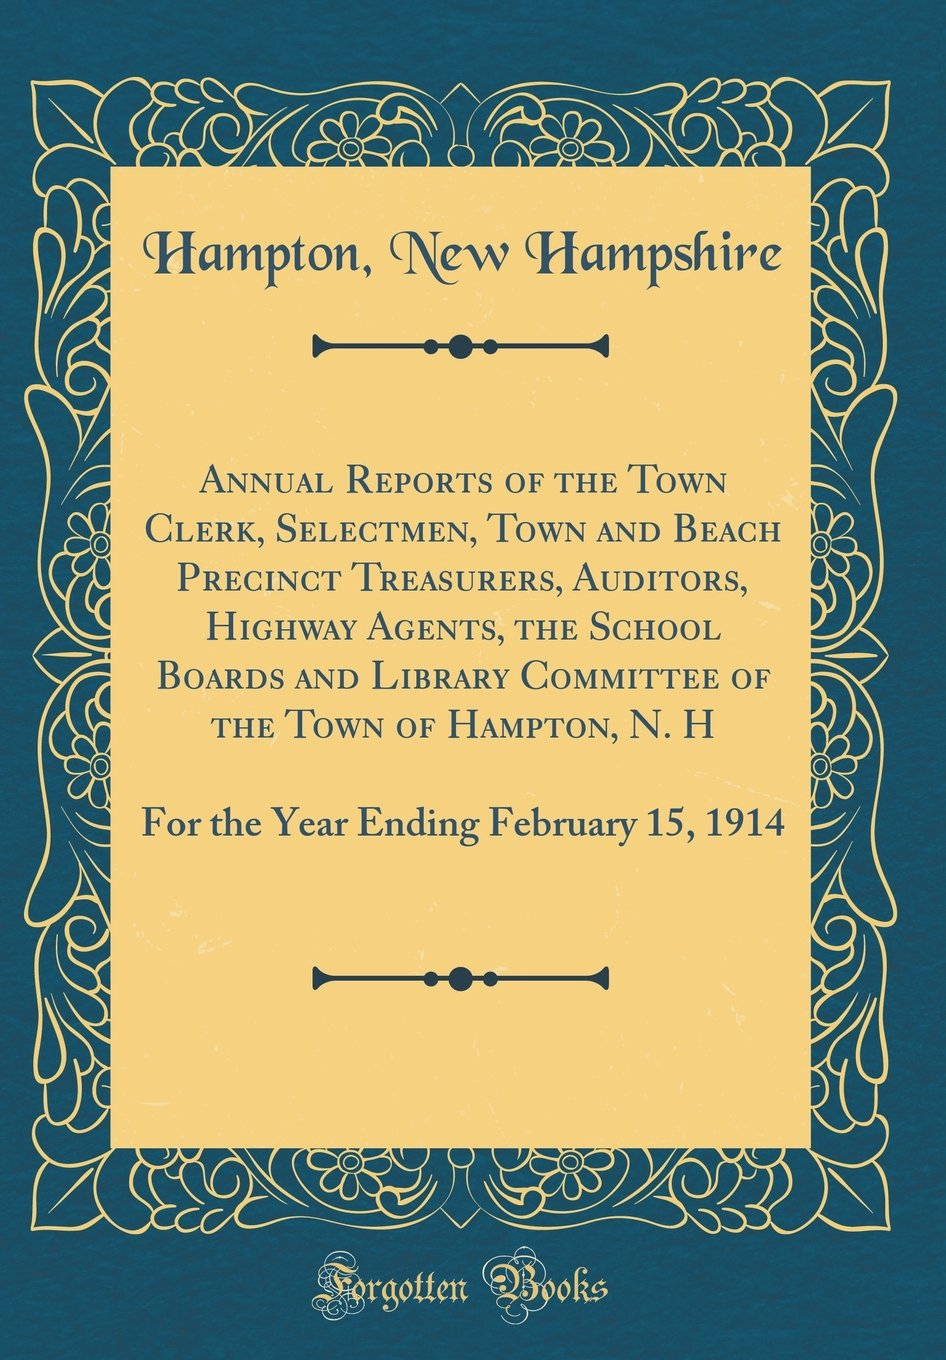 Annual Reports of the Town Clerk, Selectmen, Town and Beach Precinct Treasurers, Auditors, Highway Agents, the School Boards and Library Committee of ... Ending February 15, 1914 (Classic Reprint) pdf epub